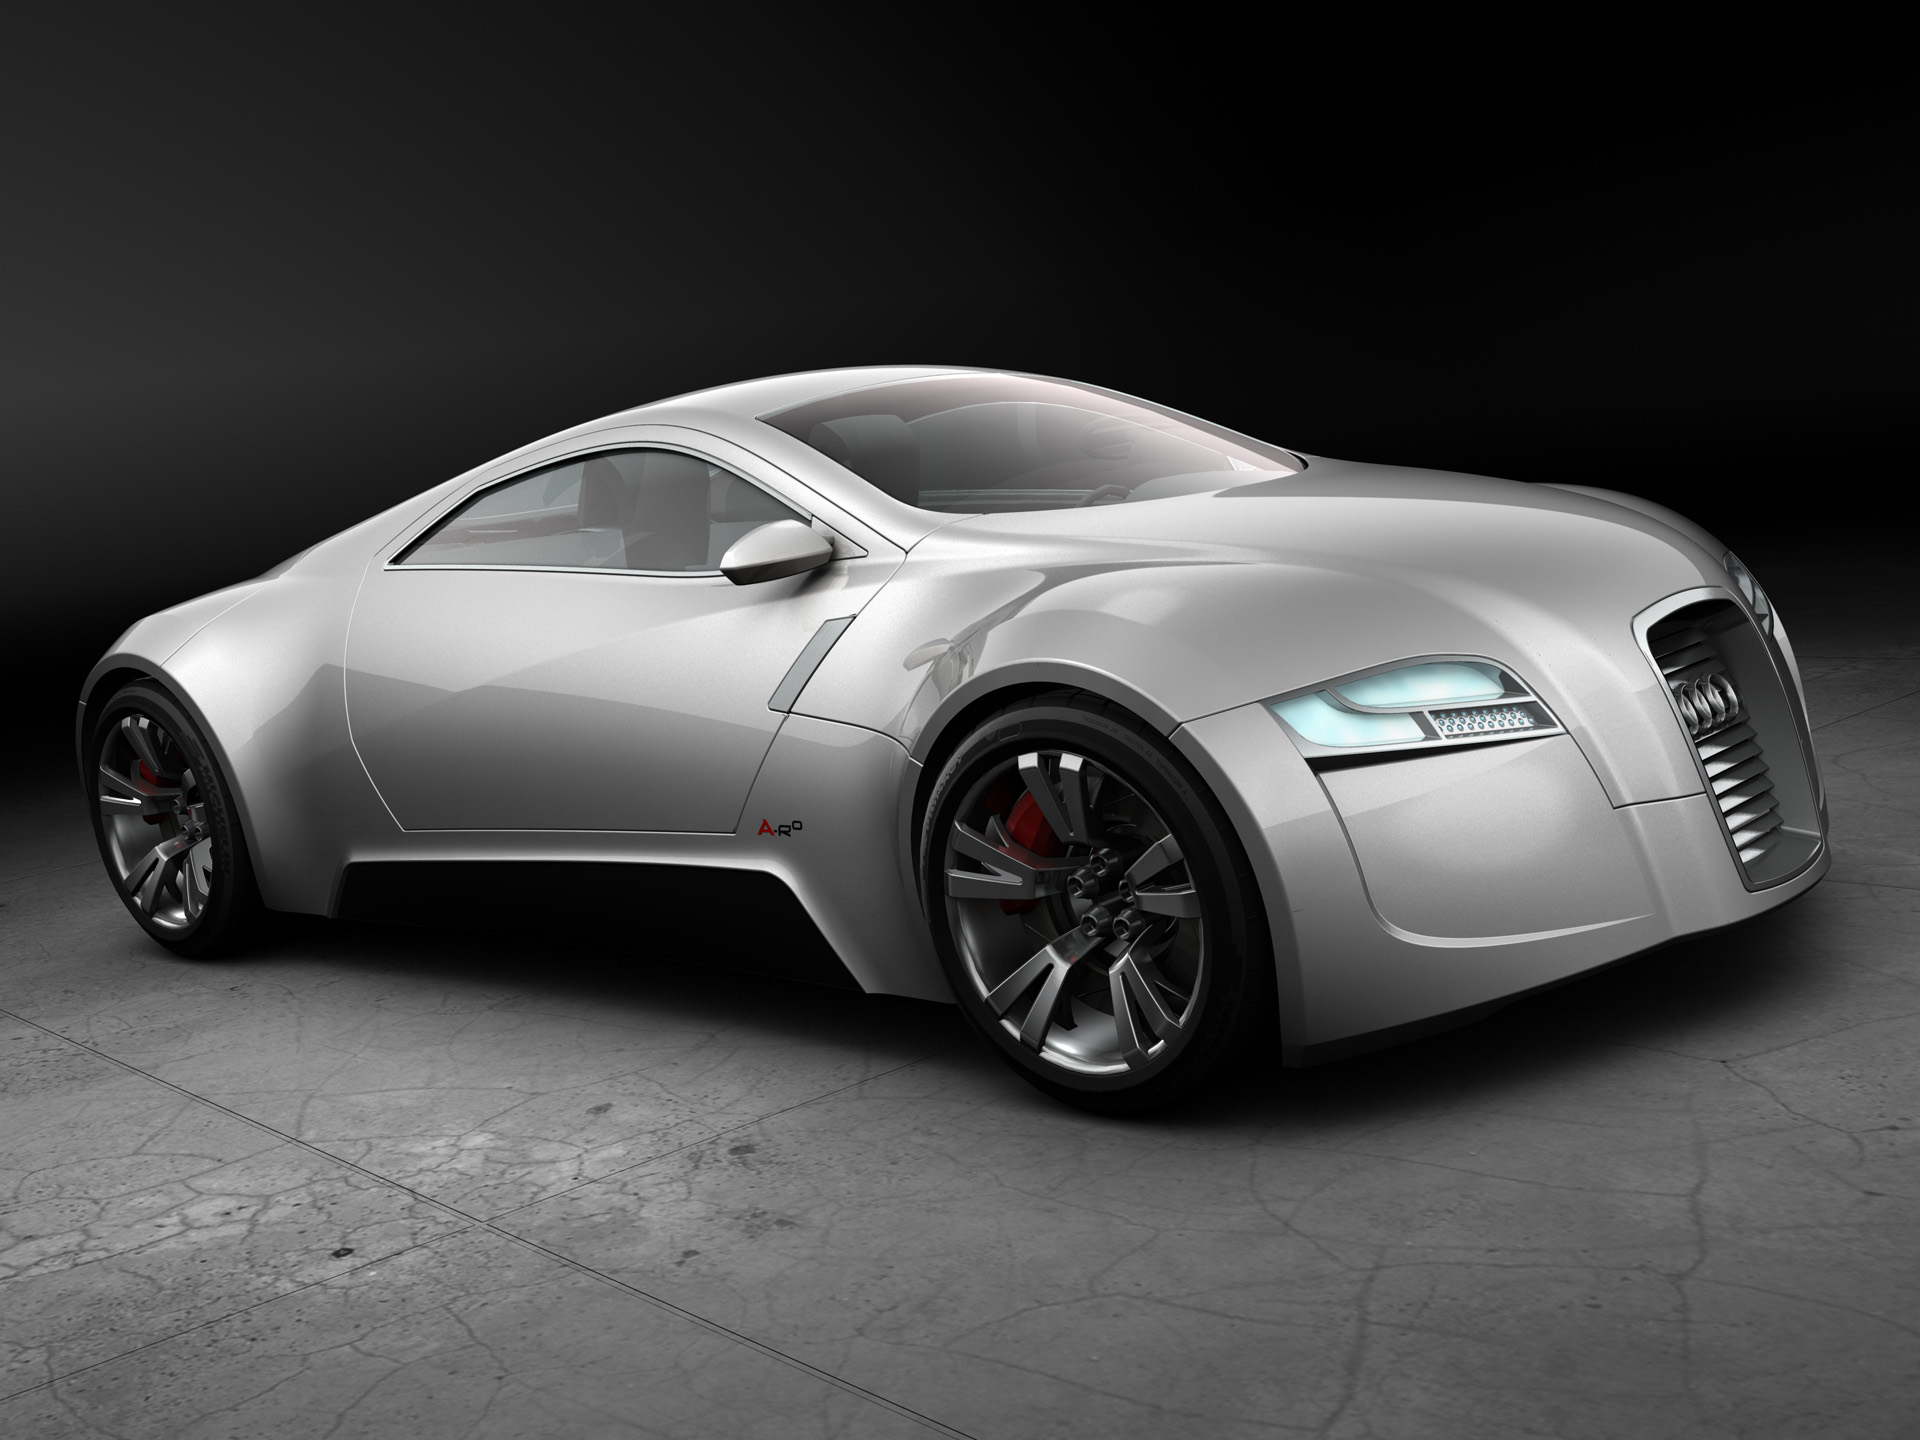 Audi Super Concept Car Wallpapers HD Wallpapers 1920x1440